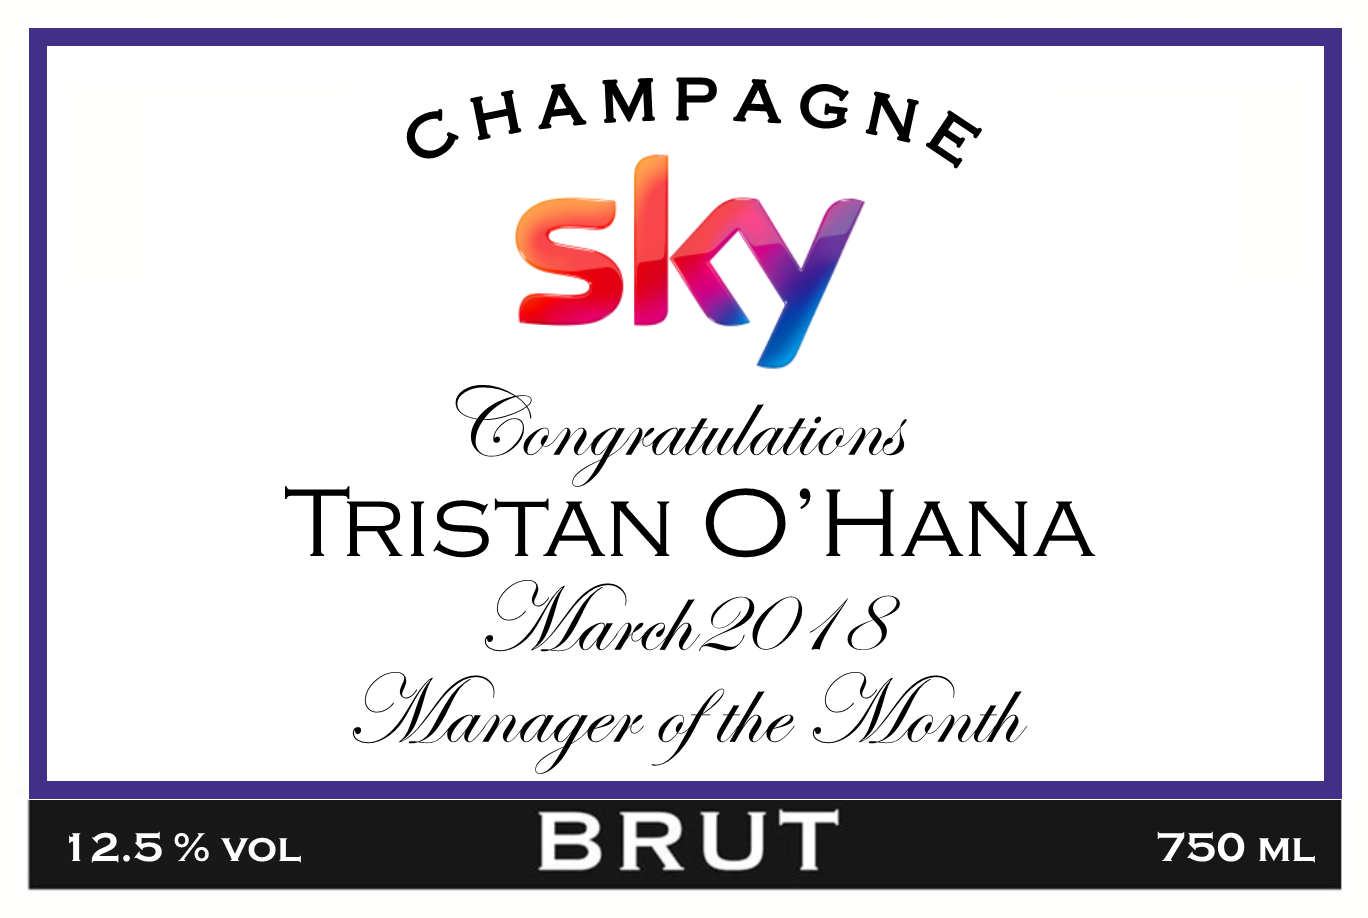 SKY Award Branded Champagne Label